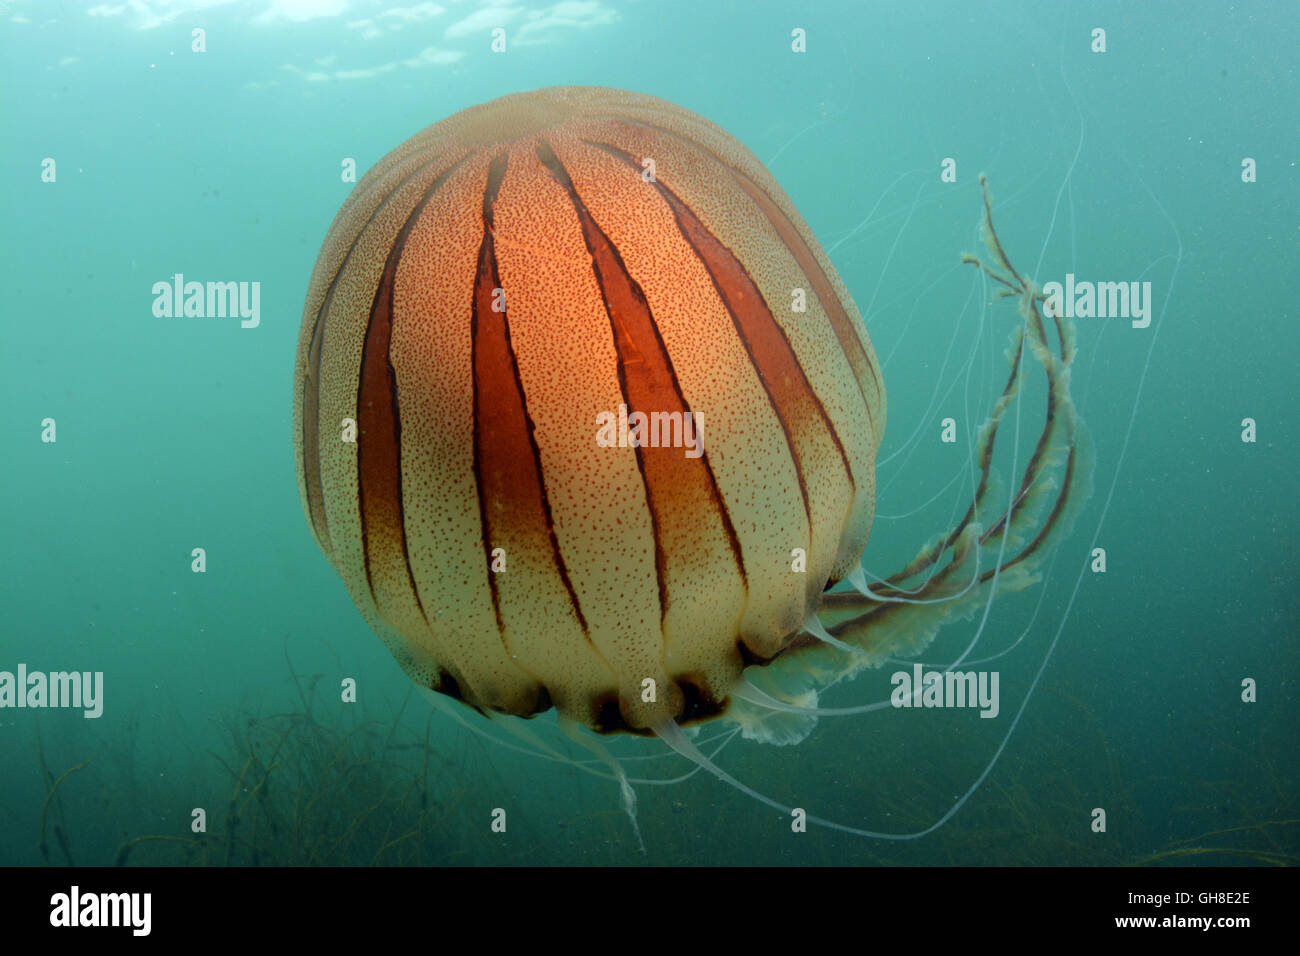 Compass jellyfish recorded at Thurlestone, South Devon - Stock Image